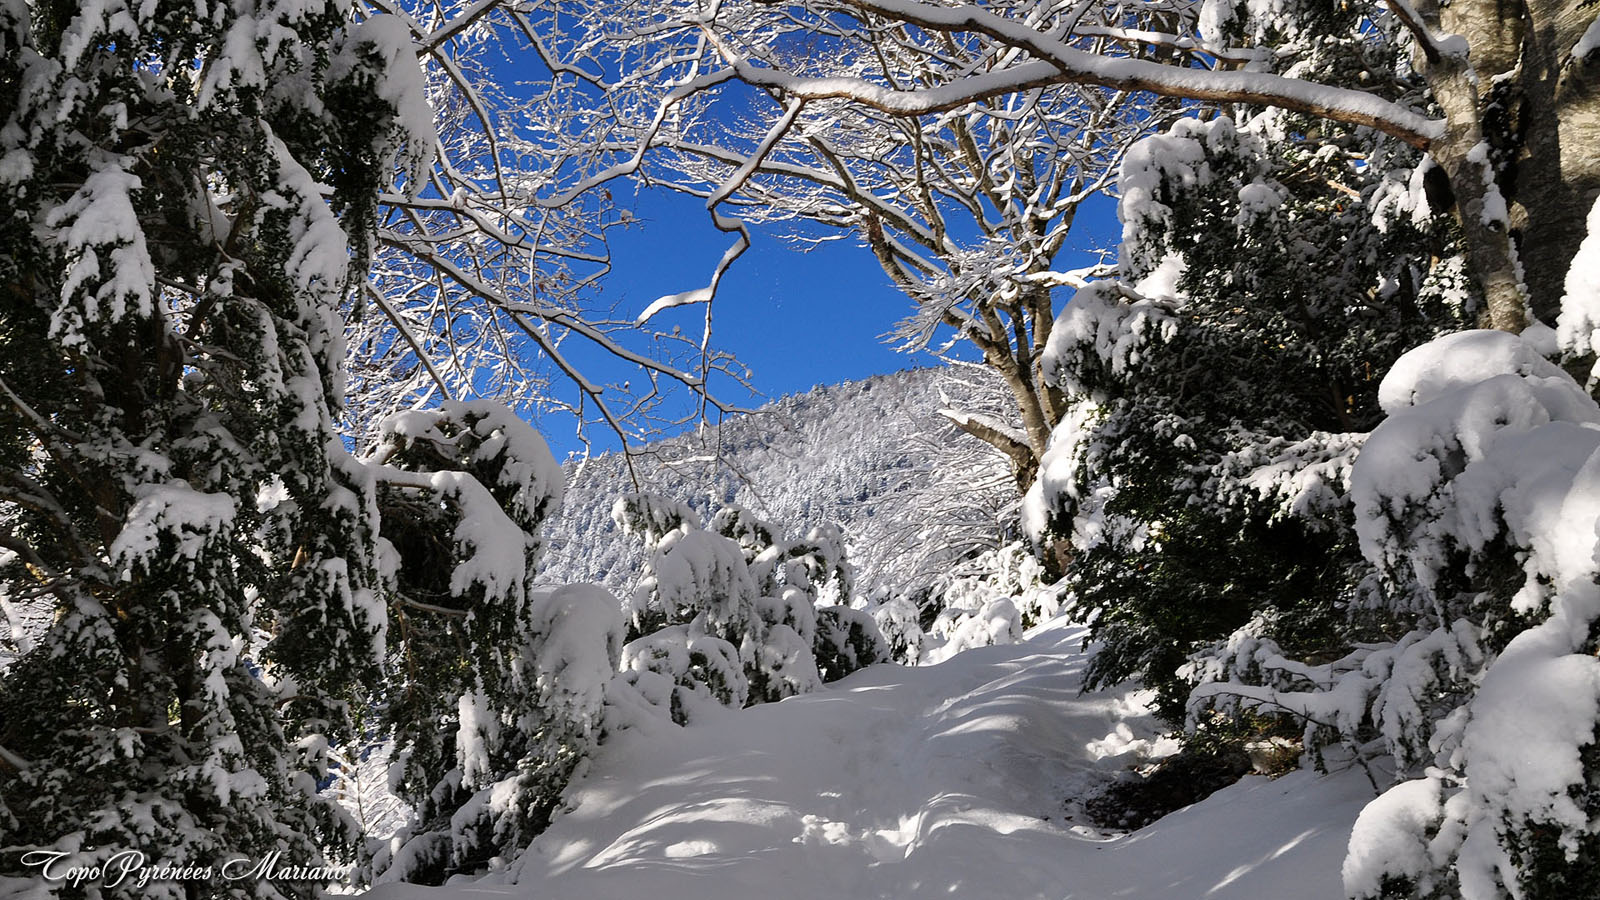 Article-Vallee-d-Ossau-hiver_052